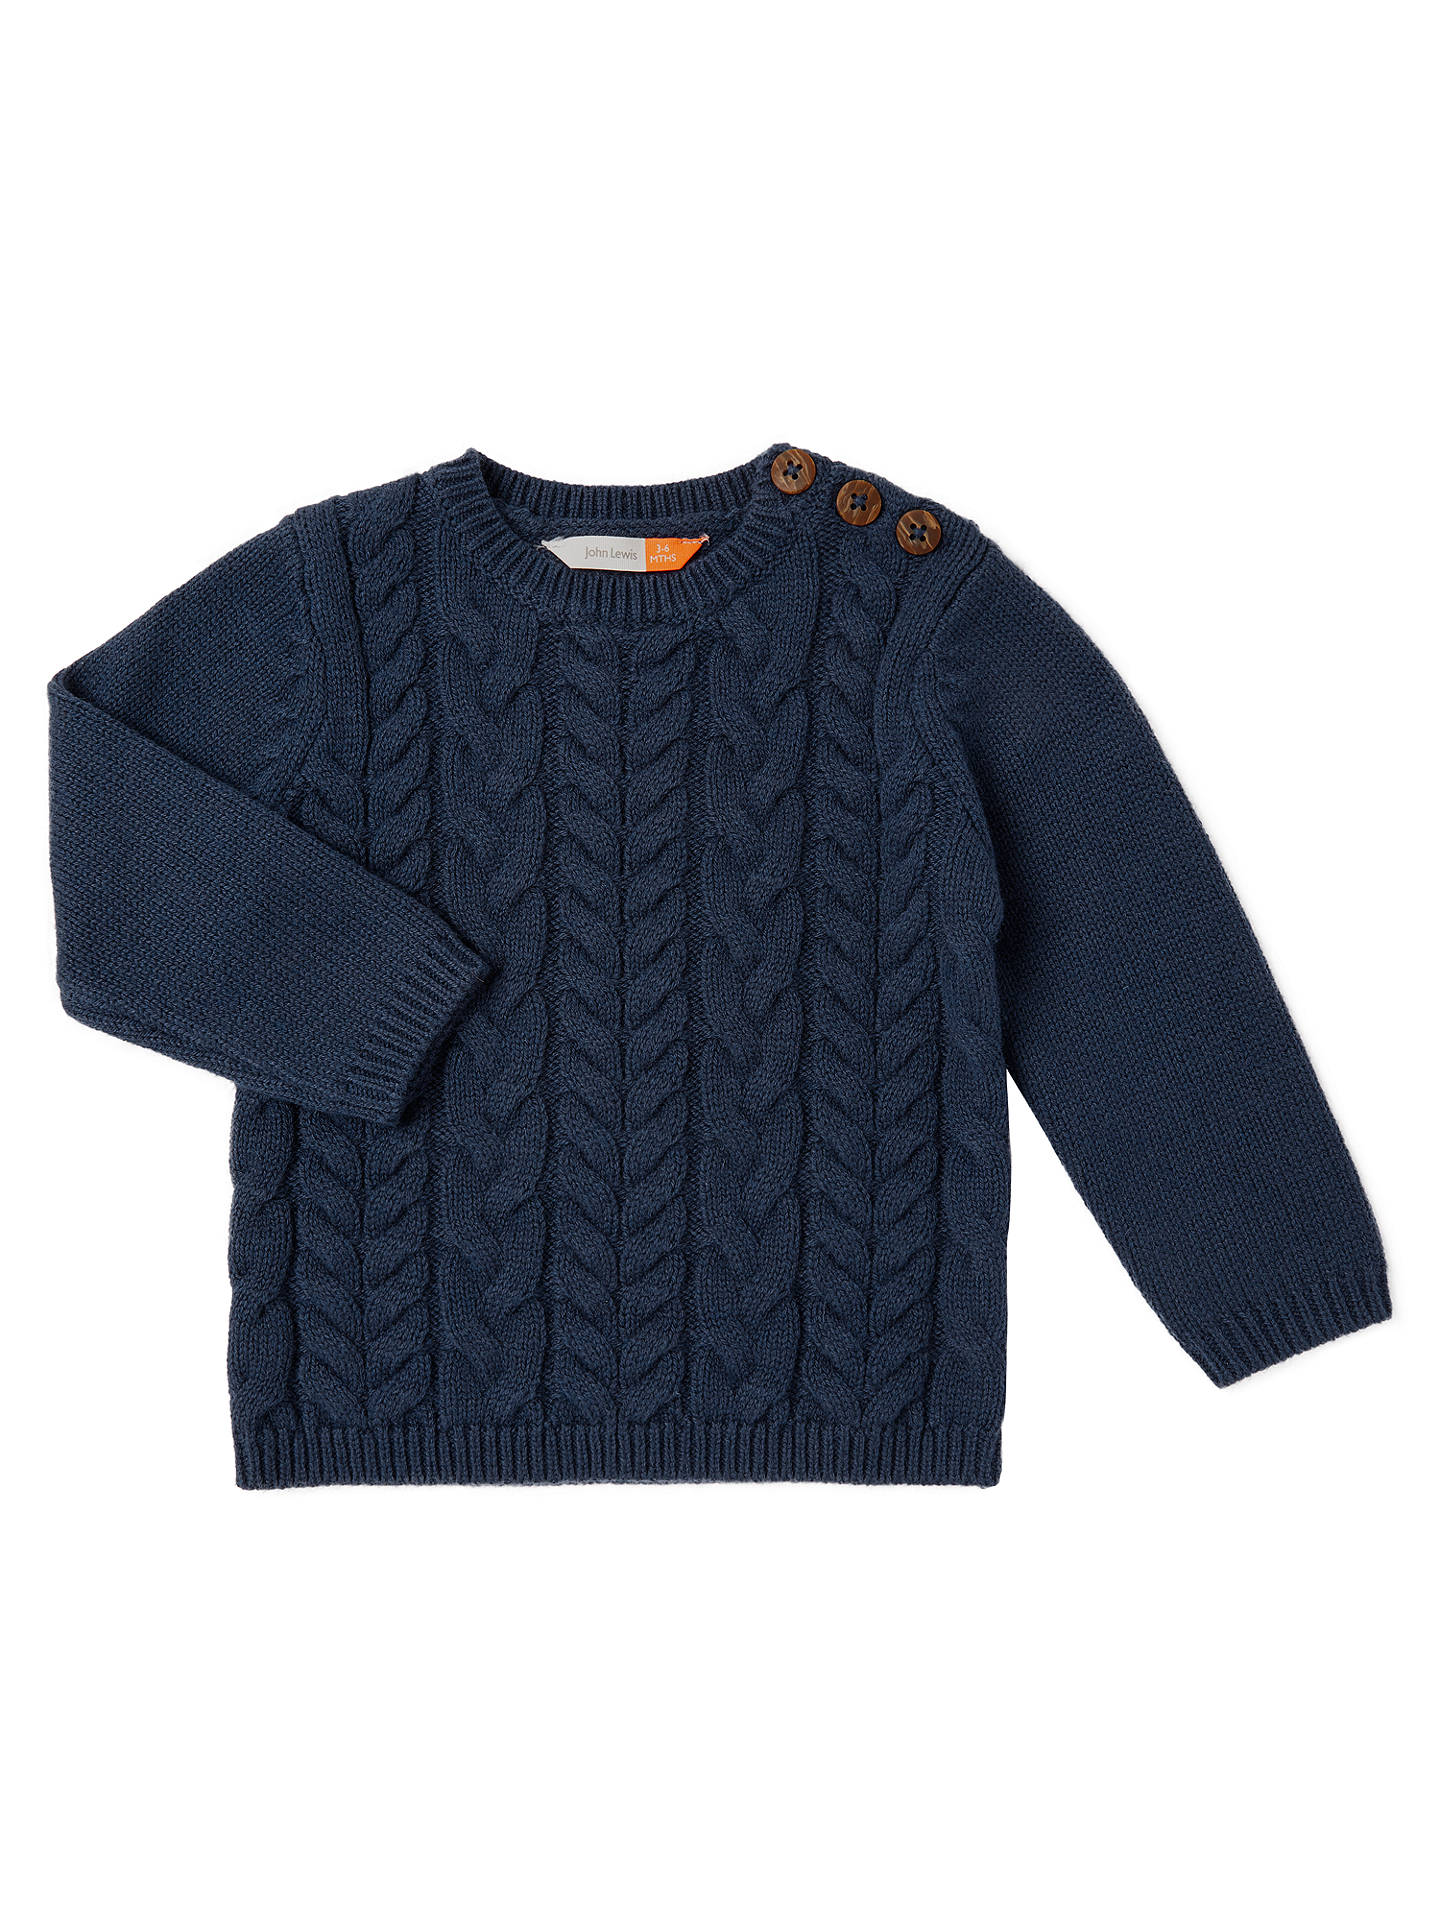 ae9c17bb8dc9 John Lewis Baby Cable Knit Crew Neck Jumper